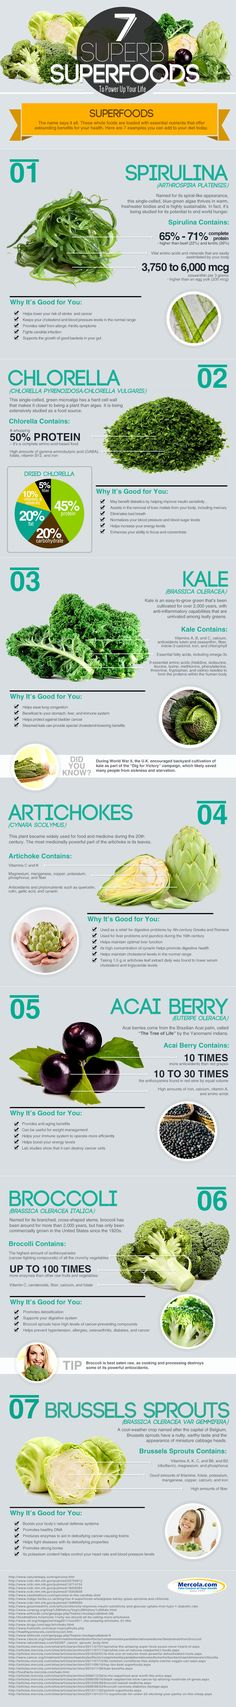 http://media.mercola.com/assets/images/infographic/superfoods-highres.jpg